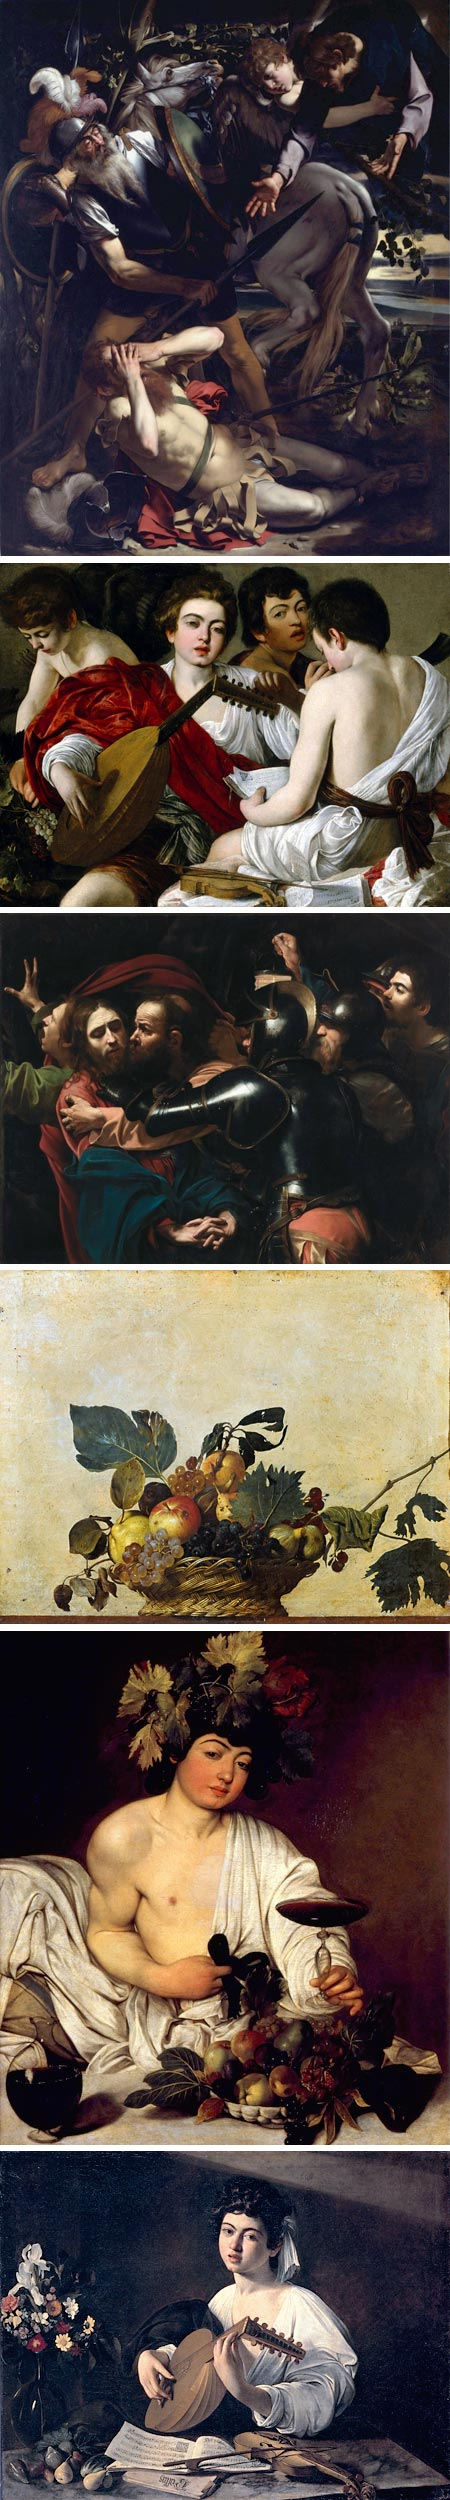 Caravaggio in Rome